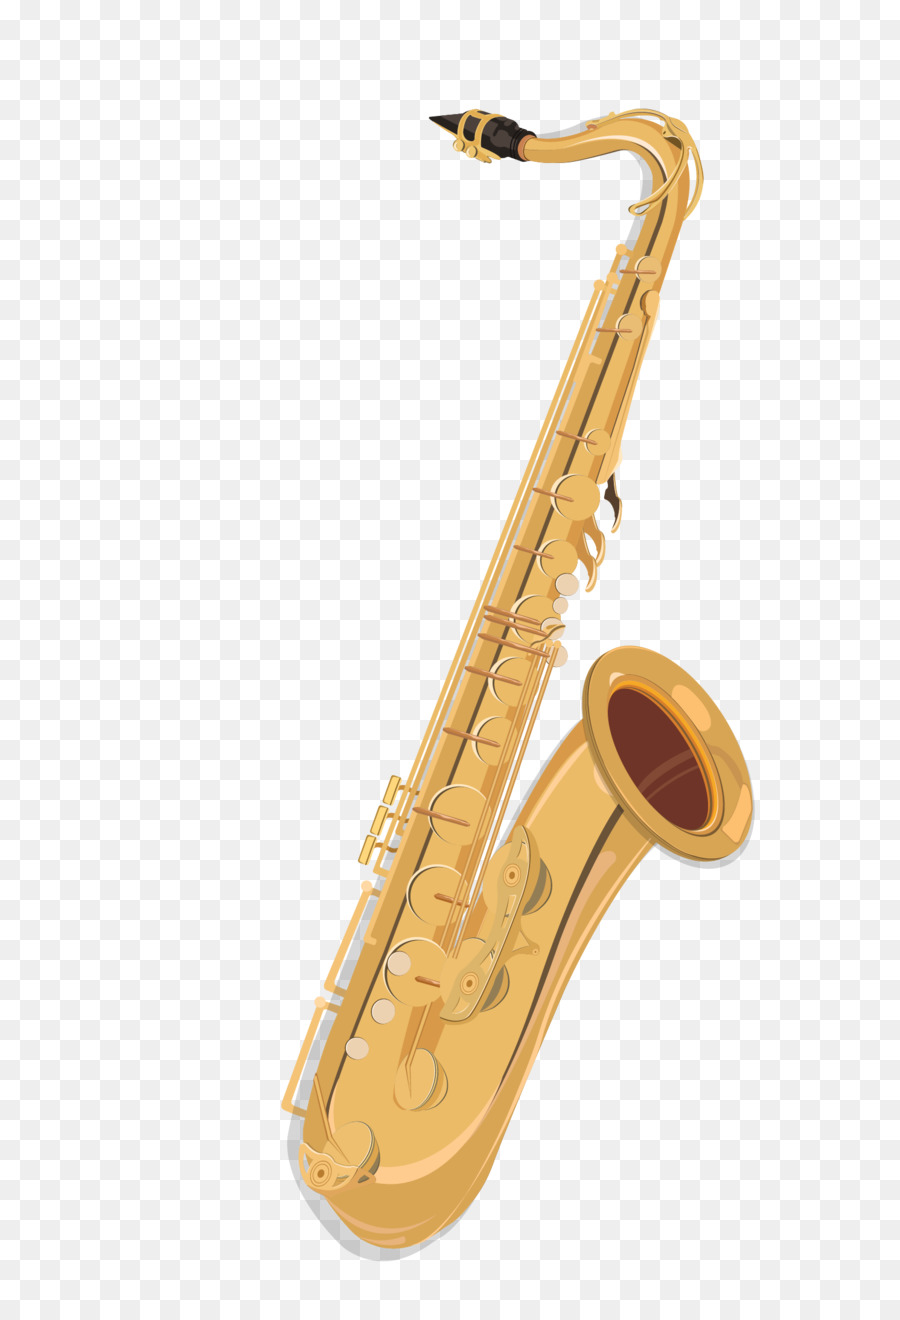 900x1320 Baritone Saxophone Musical Instrument Drawing